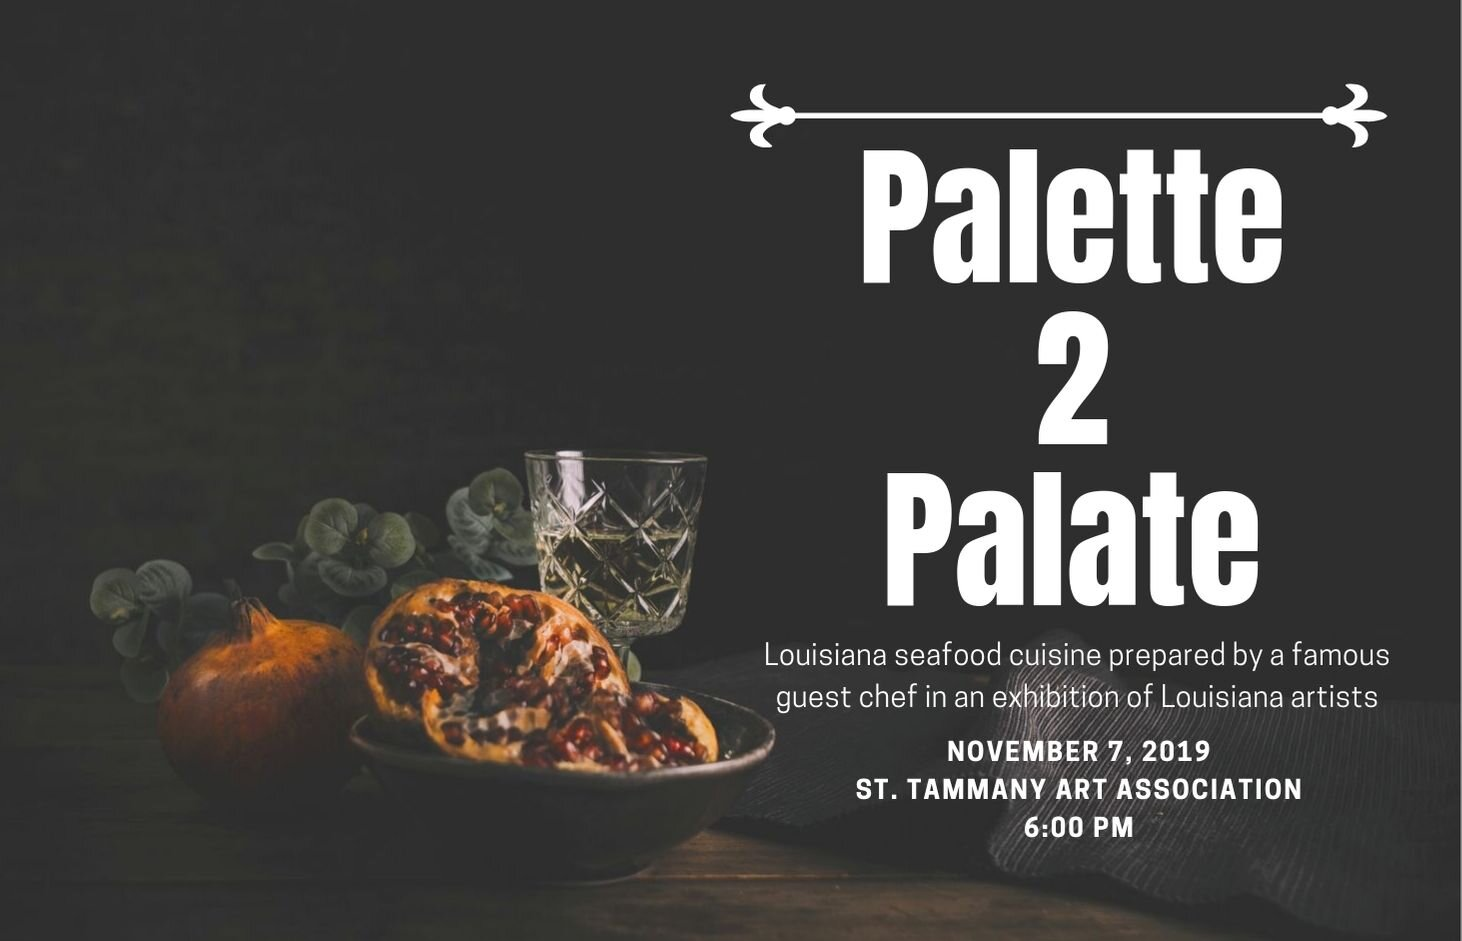 Palette 2 Palate-edge.jpg